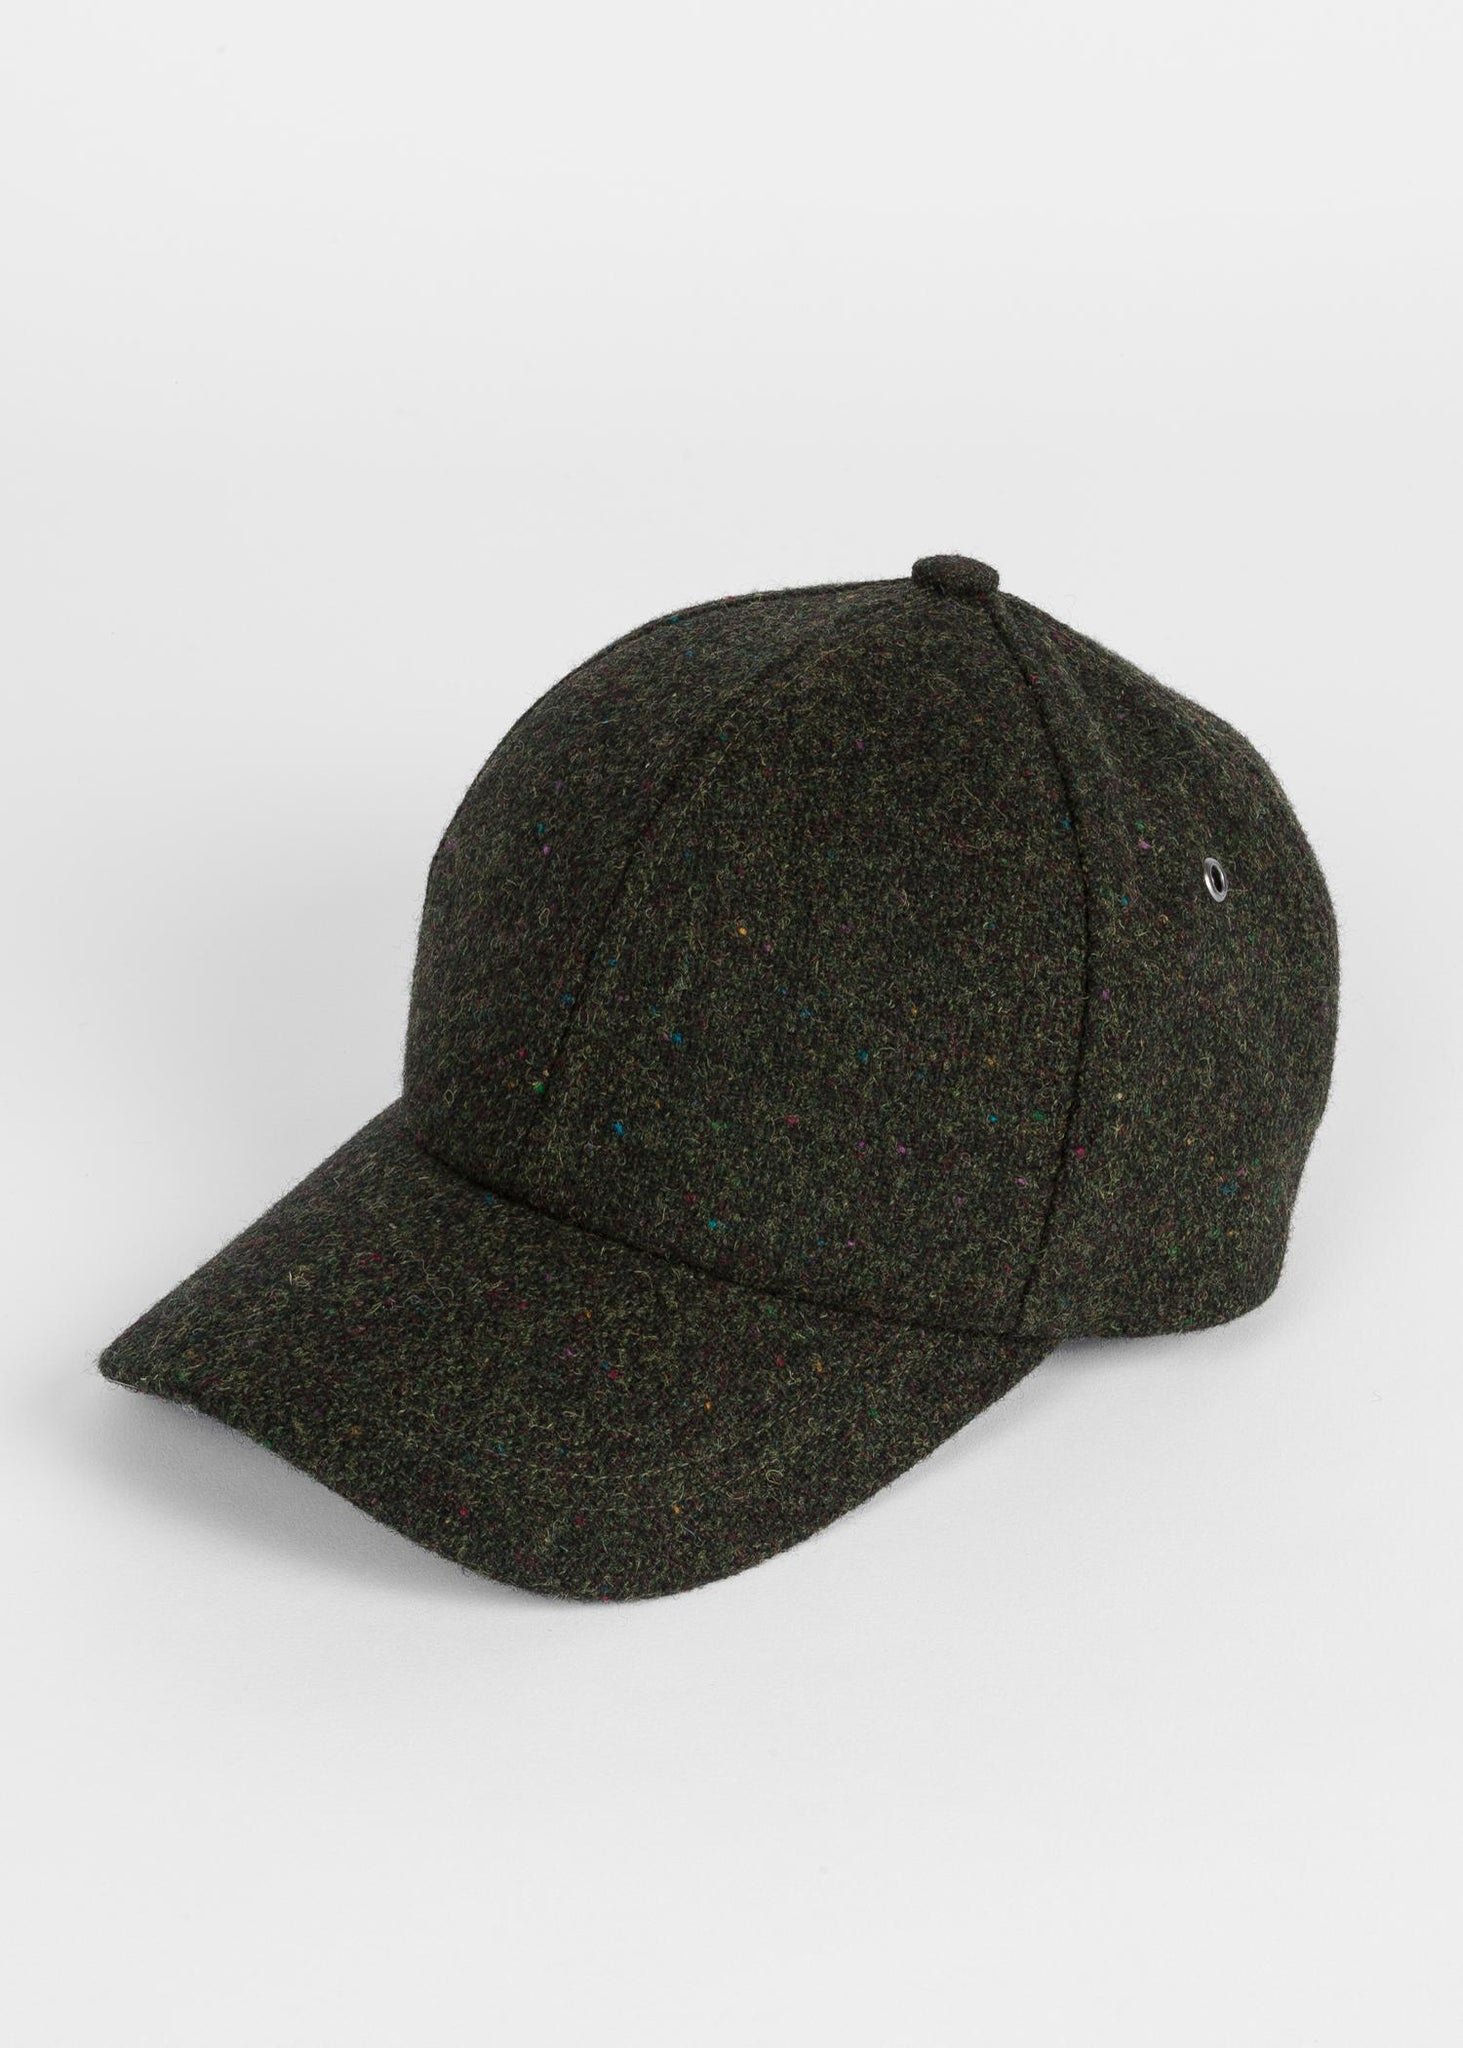 Paul Smith Men's Flecked Wool Cap Olive